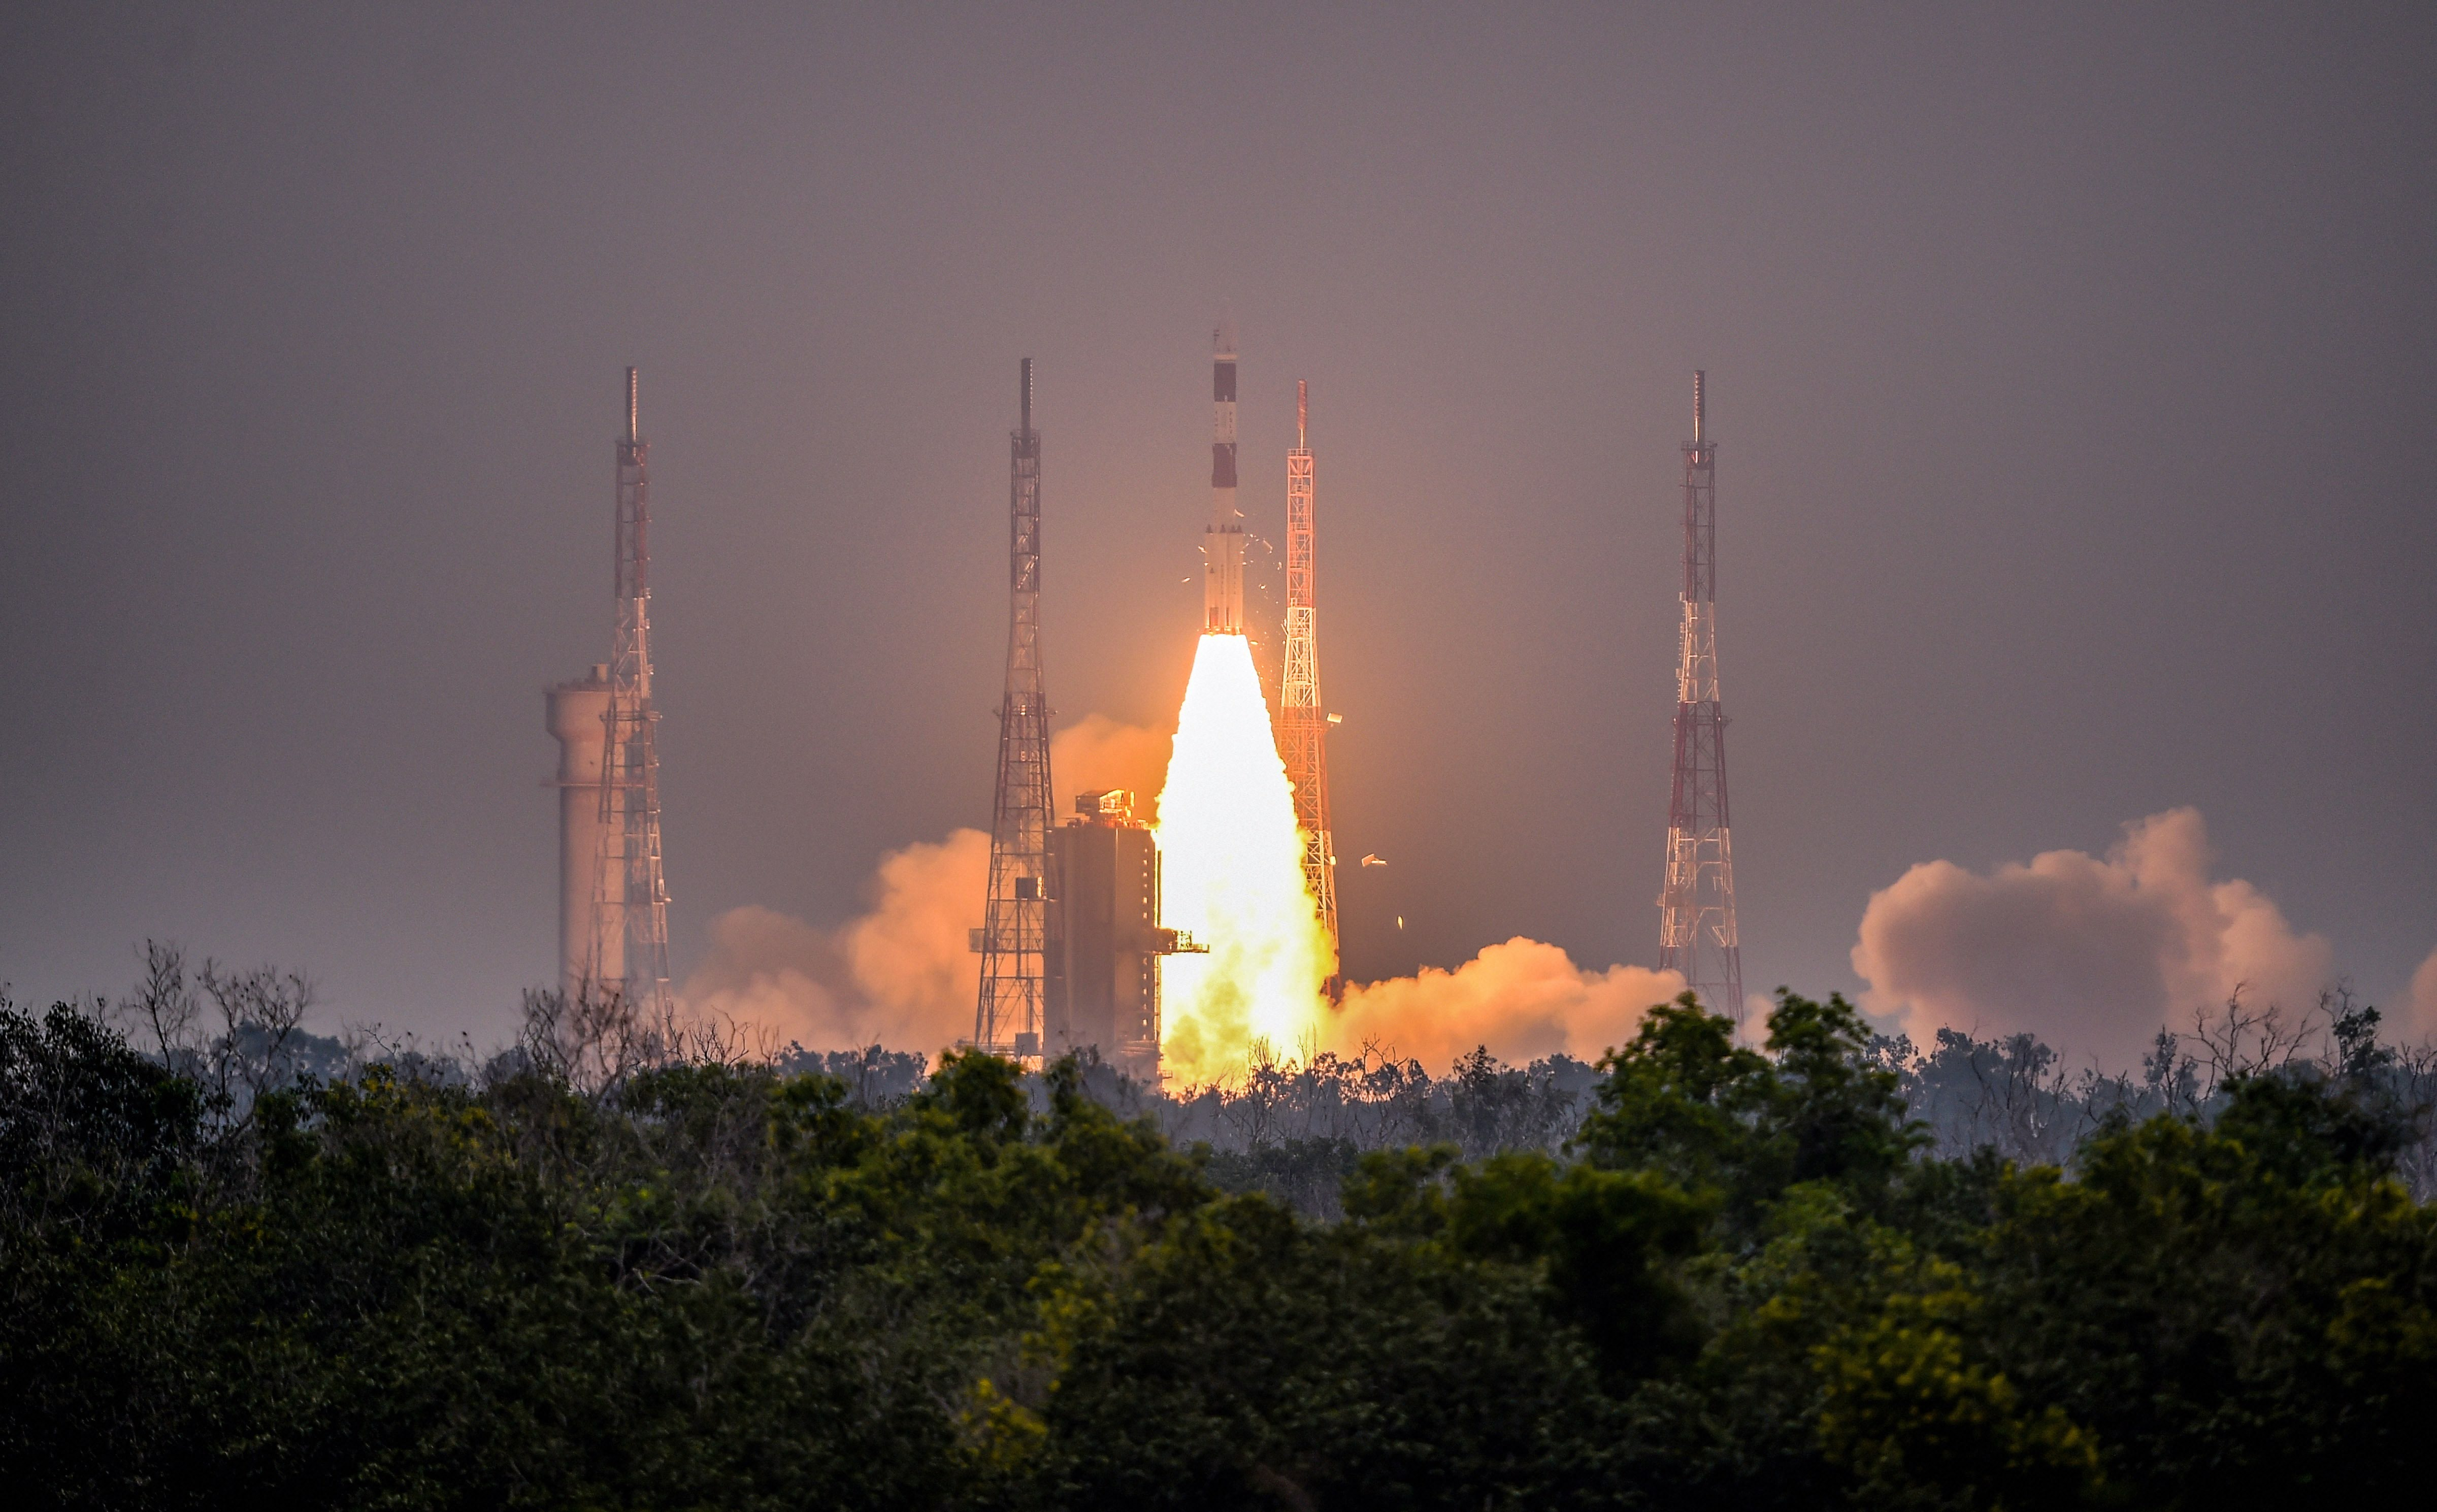 Indian Space Research Organisation's Polar Satellite Launch Vehicle, PSLV-C47, carrying India's earth observation satellite Cartosat-3 lifts off from Sriharikota, in Andhra Pradesh, Wednesday, November 27, 2019.